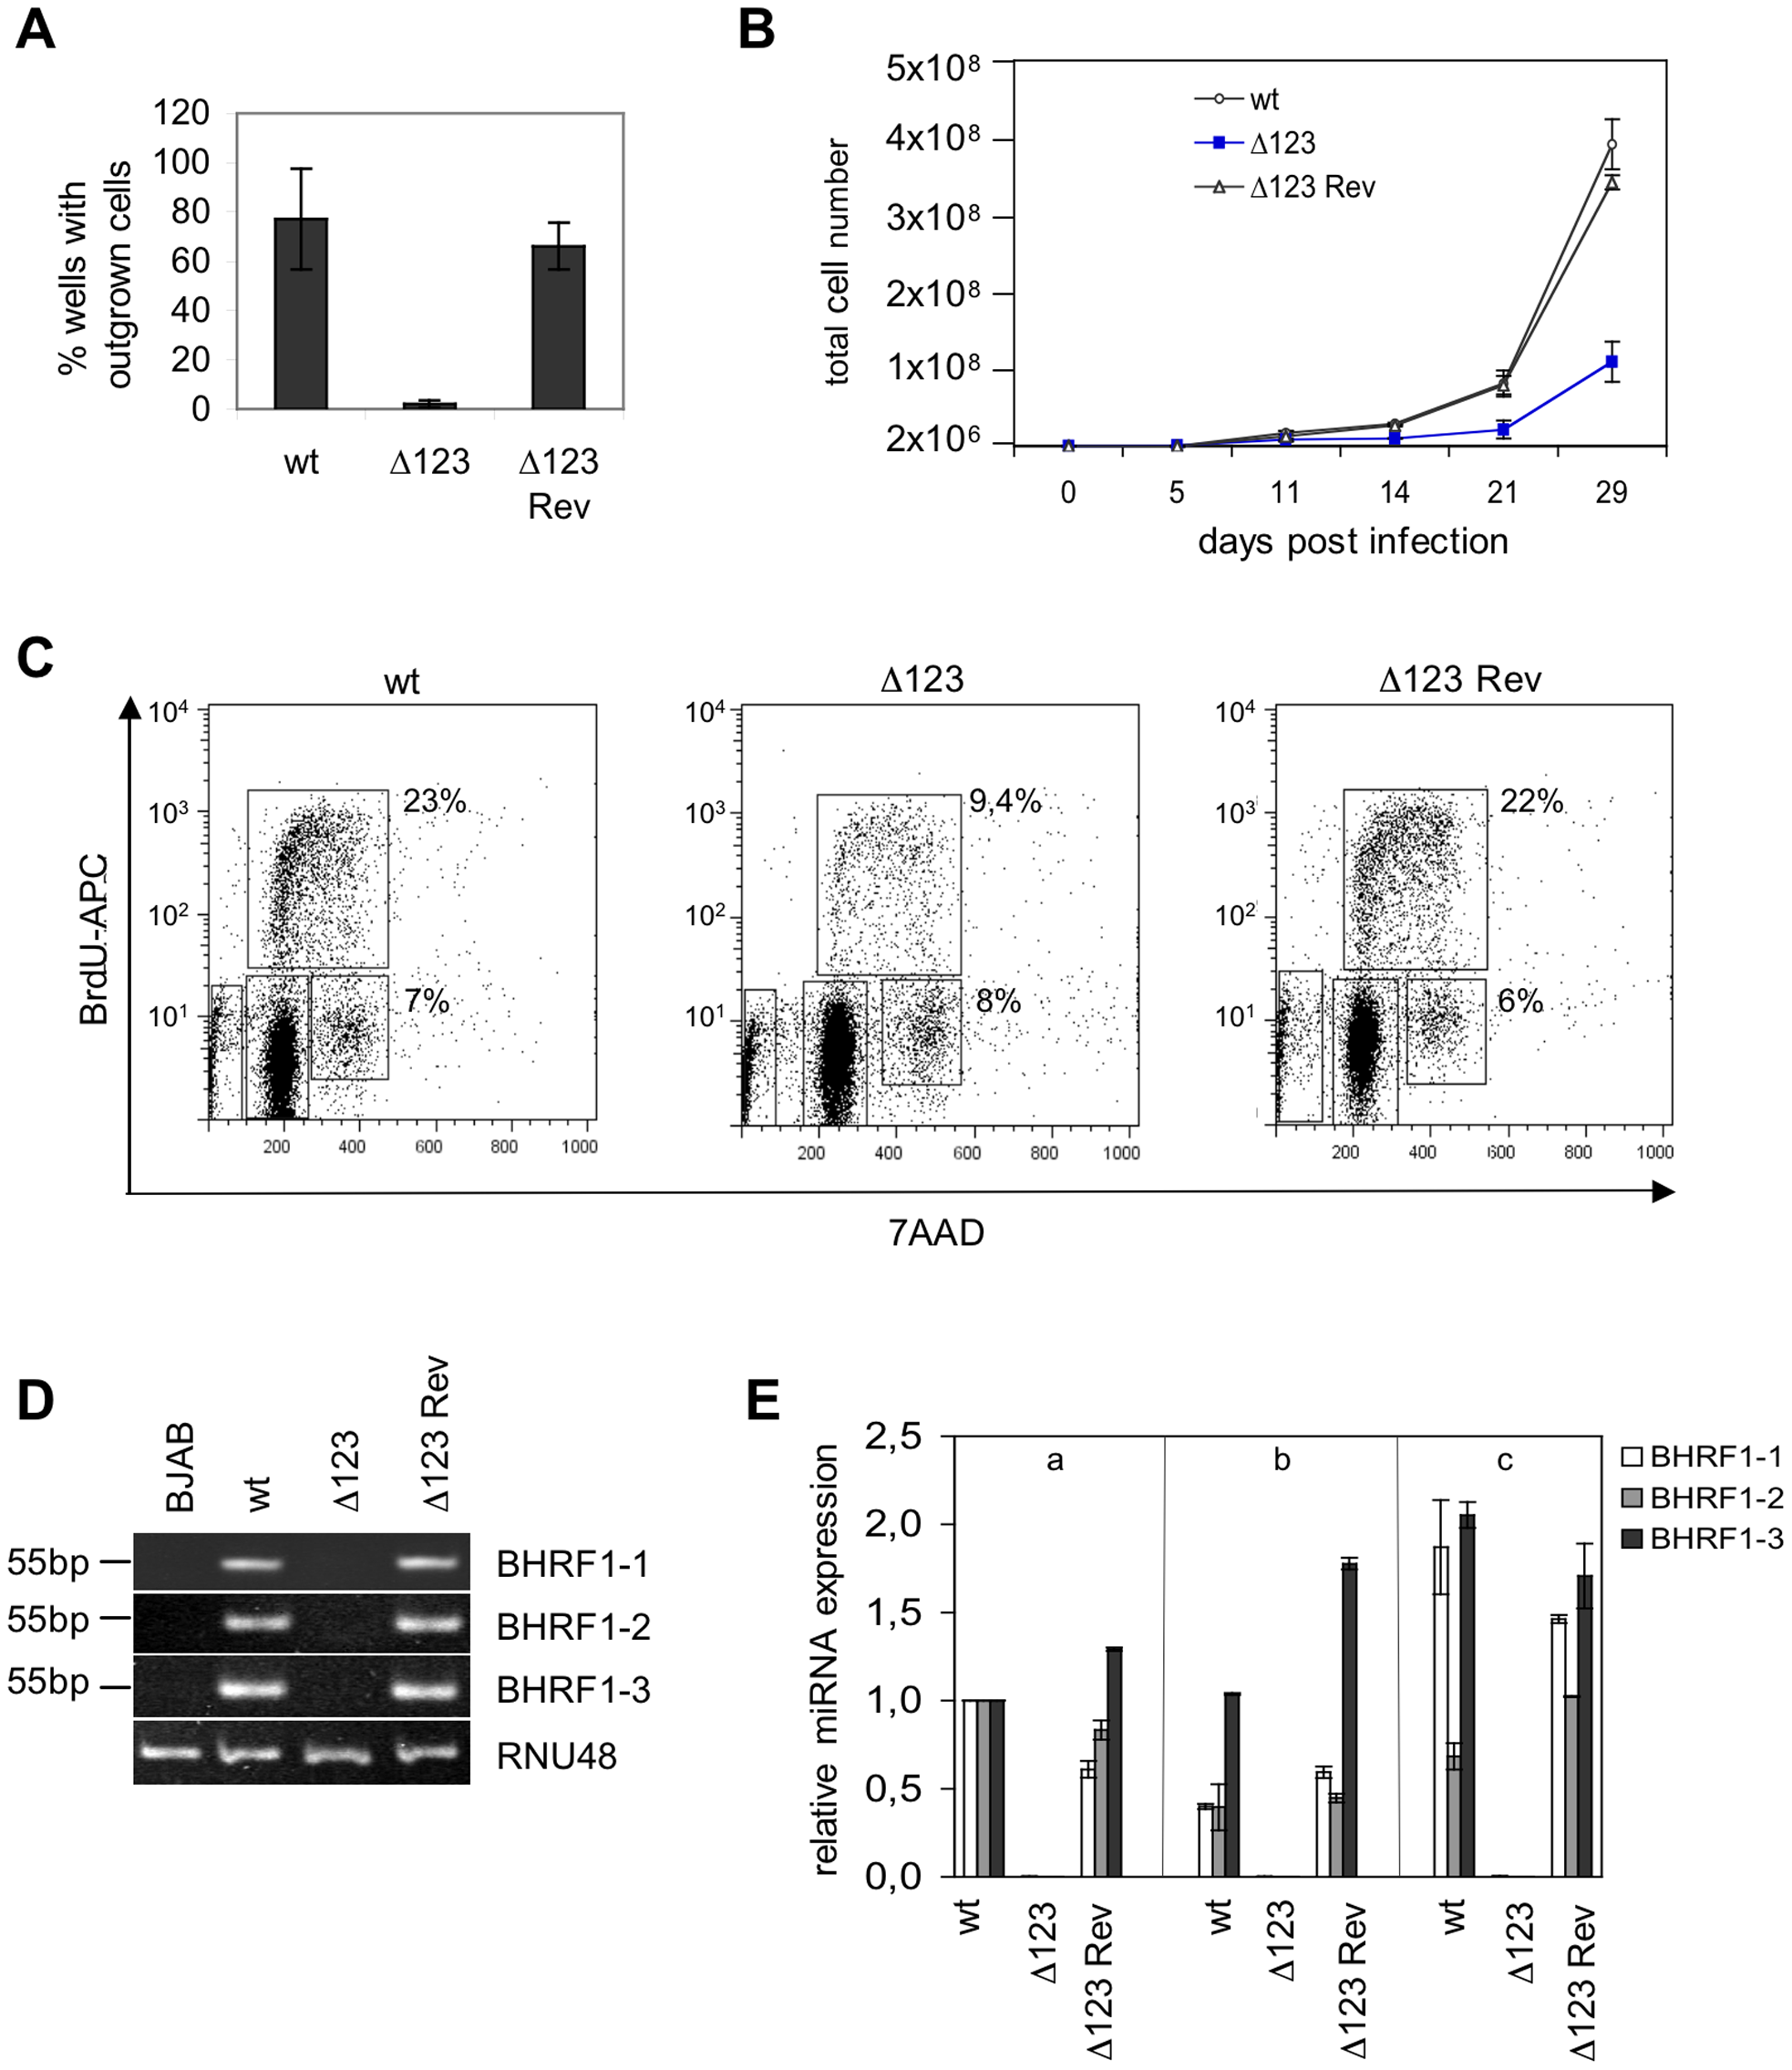 B cells transformed by Δ123 virus show defective cell growth relative to its wild type counterparts.